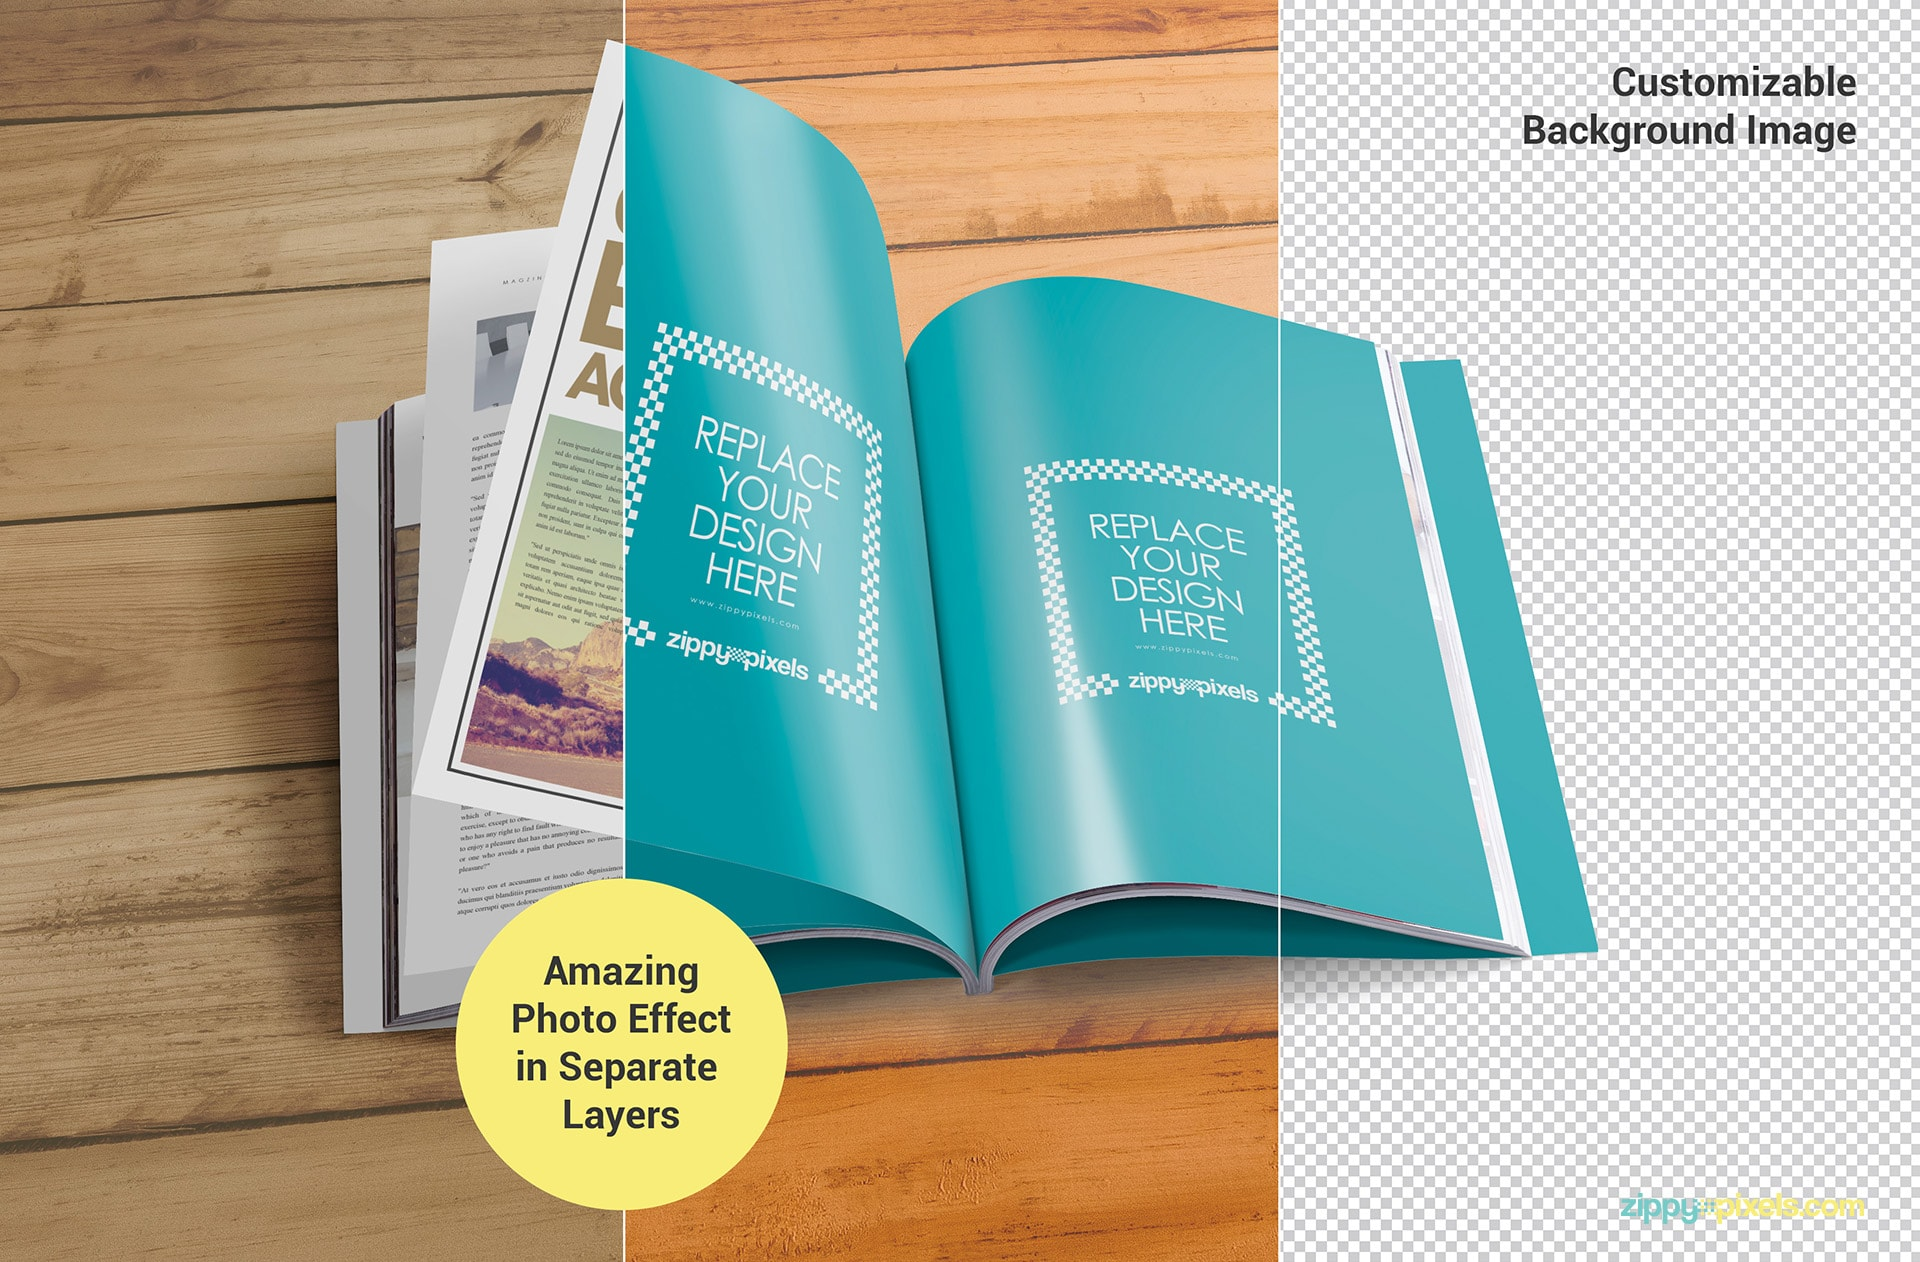 psd magazine cover mock-ups with customizable features